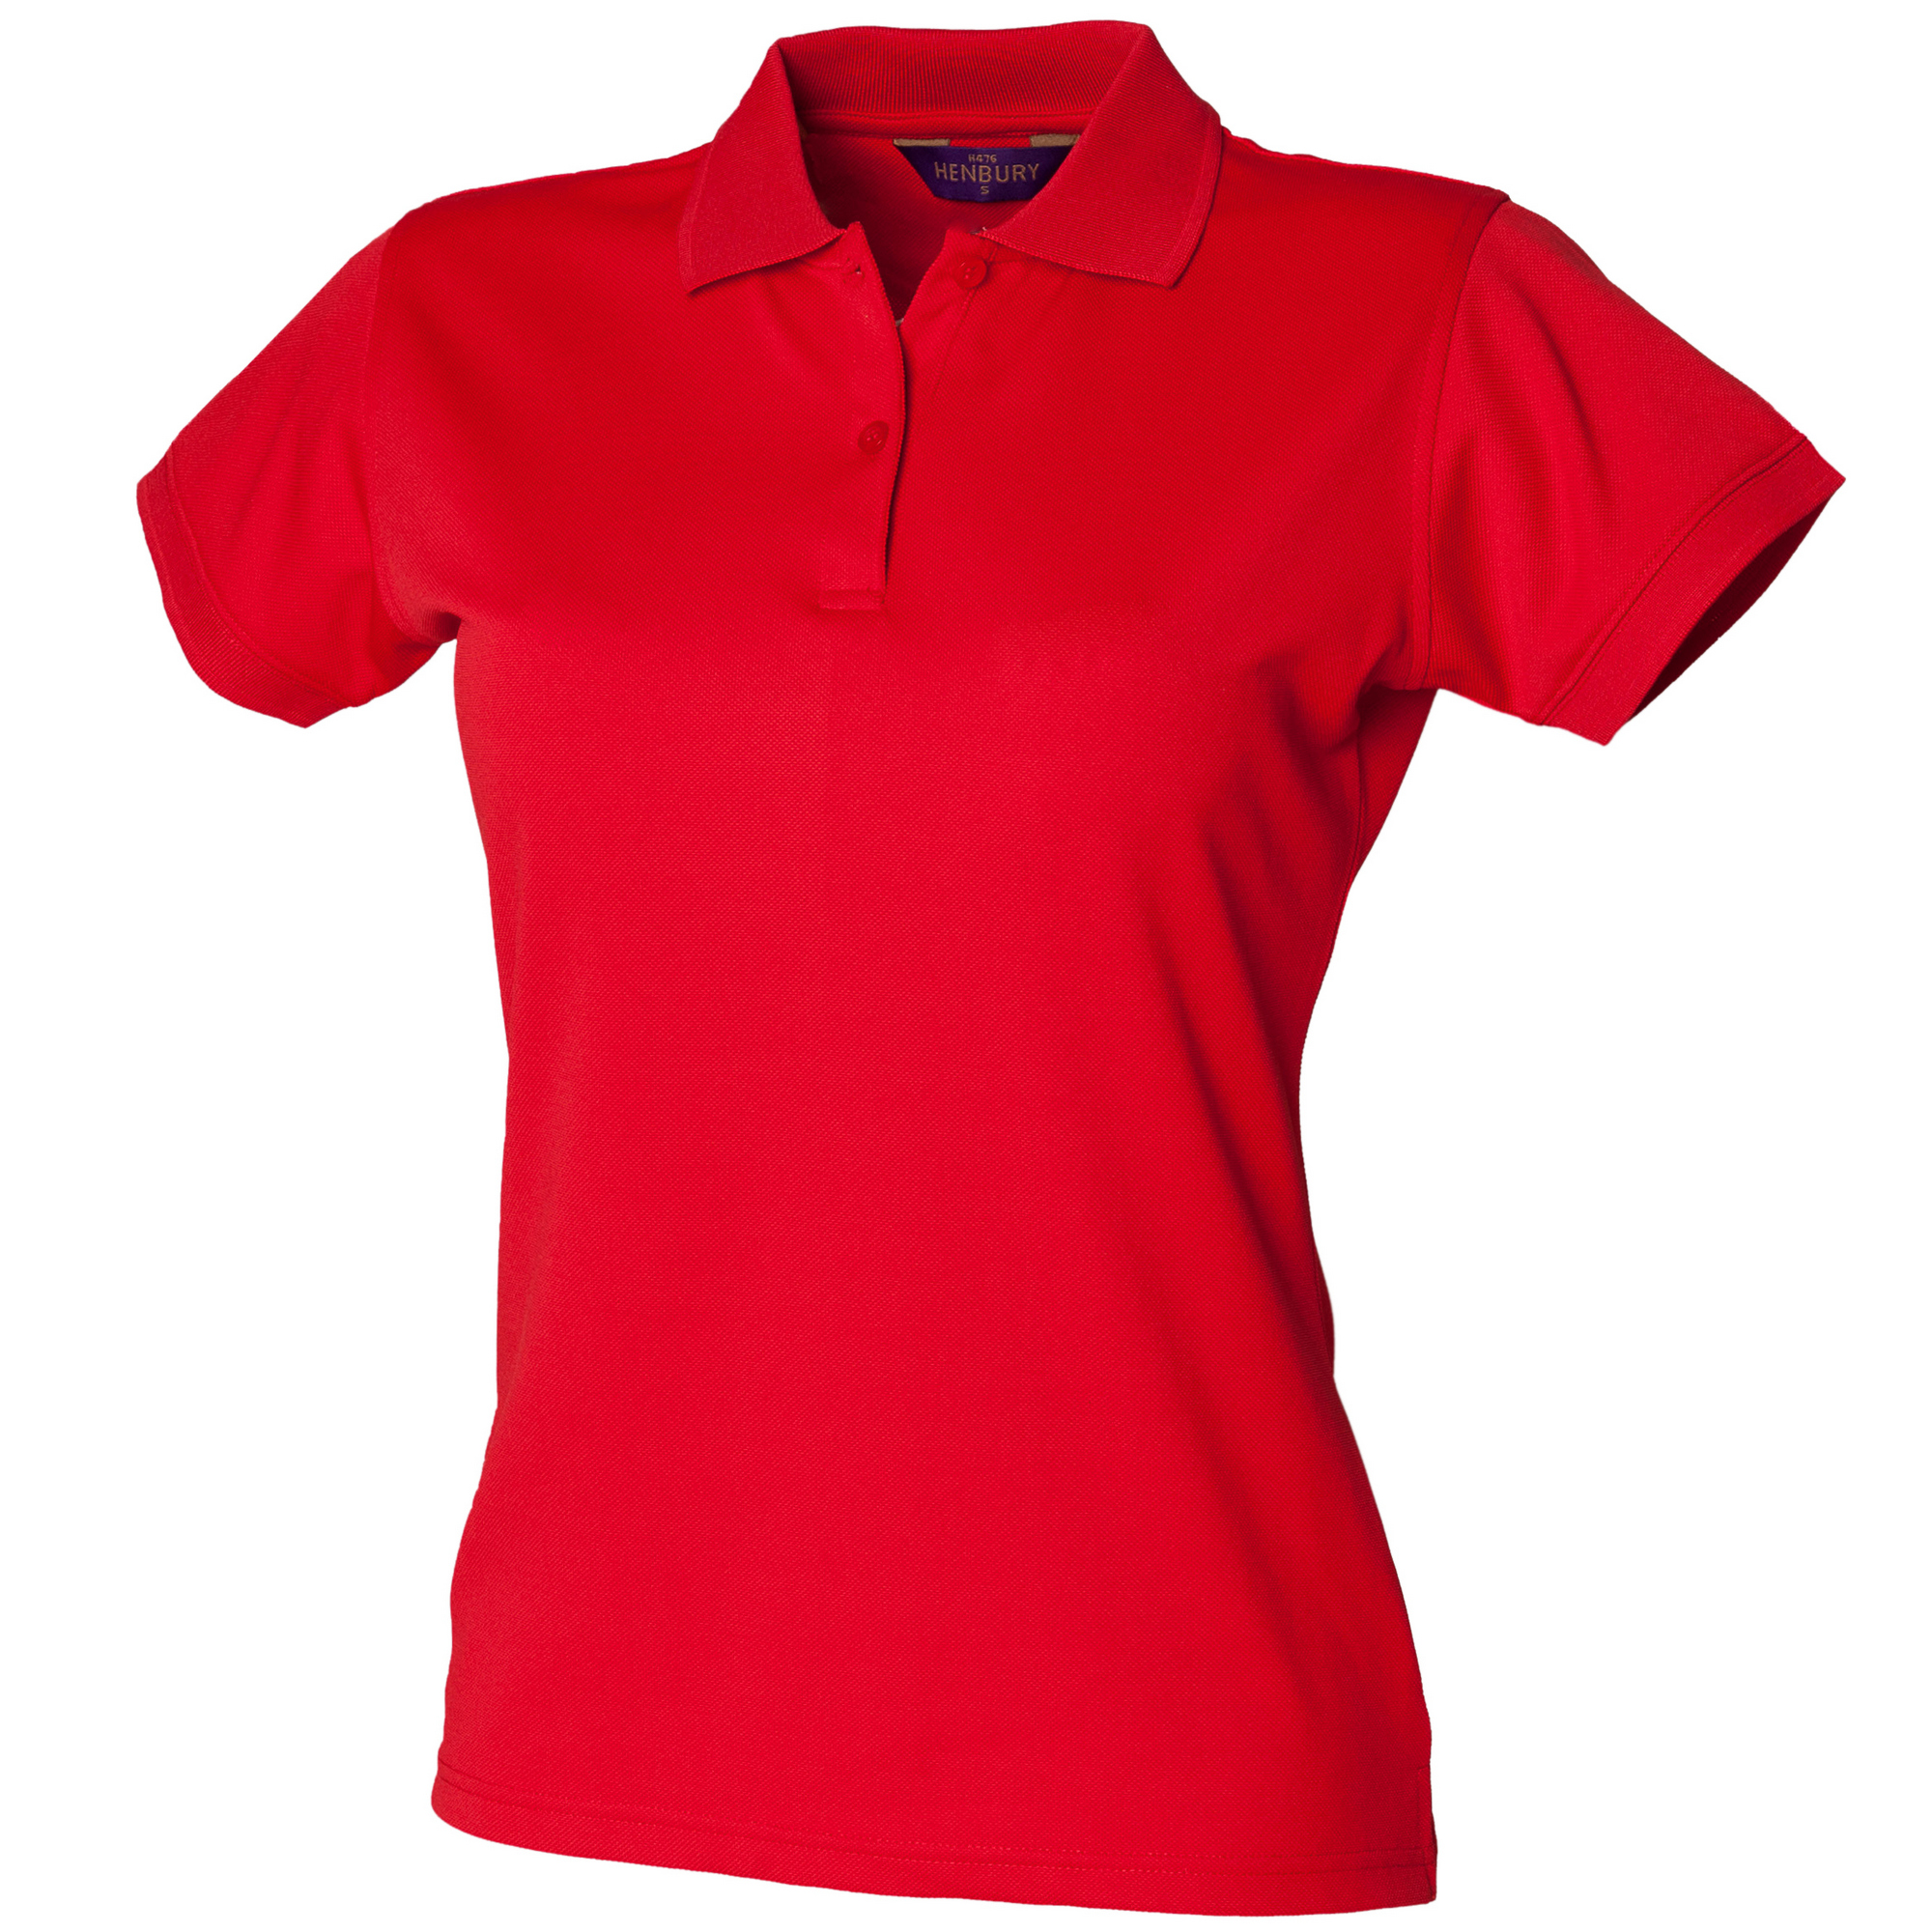 henbury womens ladies coolplus fitted polo shirt ebay. Black Bedroom Furniture Sets. Home Design Ideas